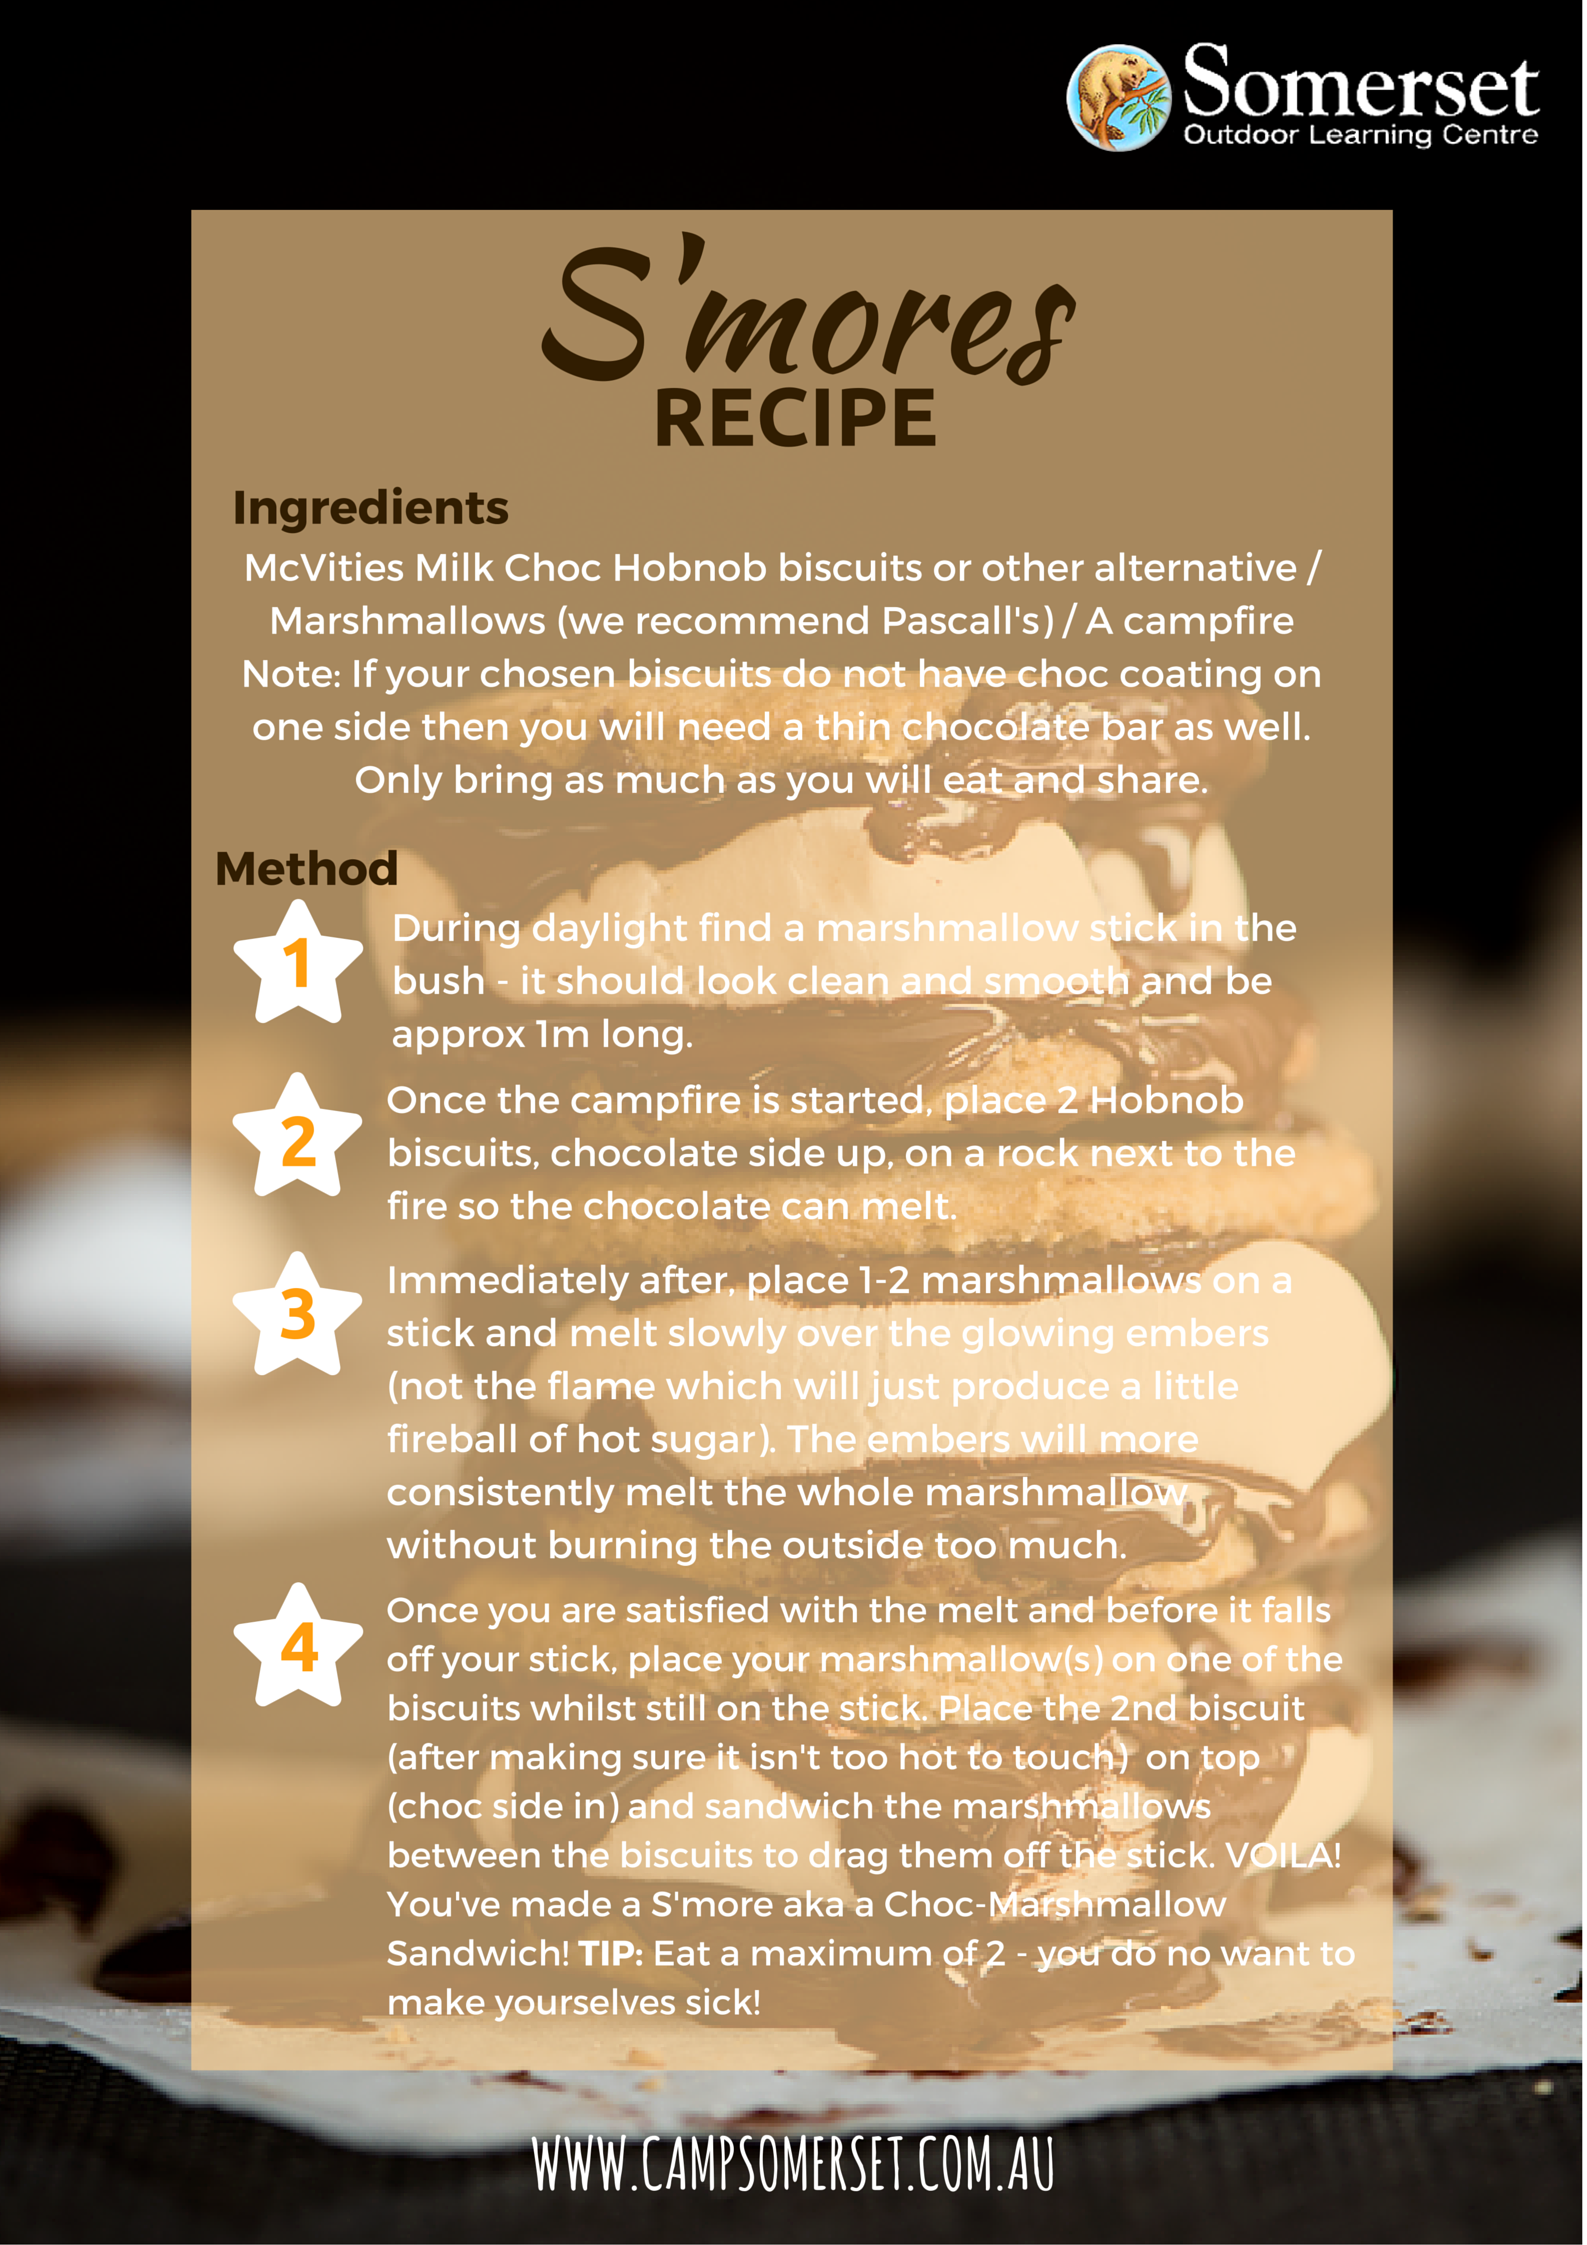 Image Smores Recipe Card